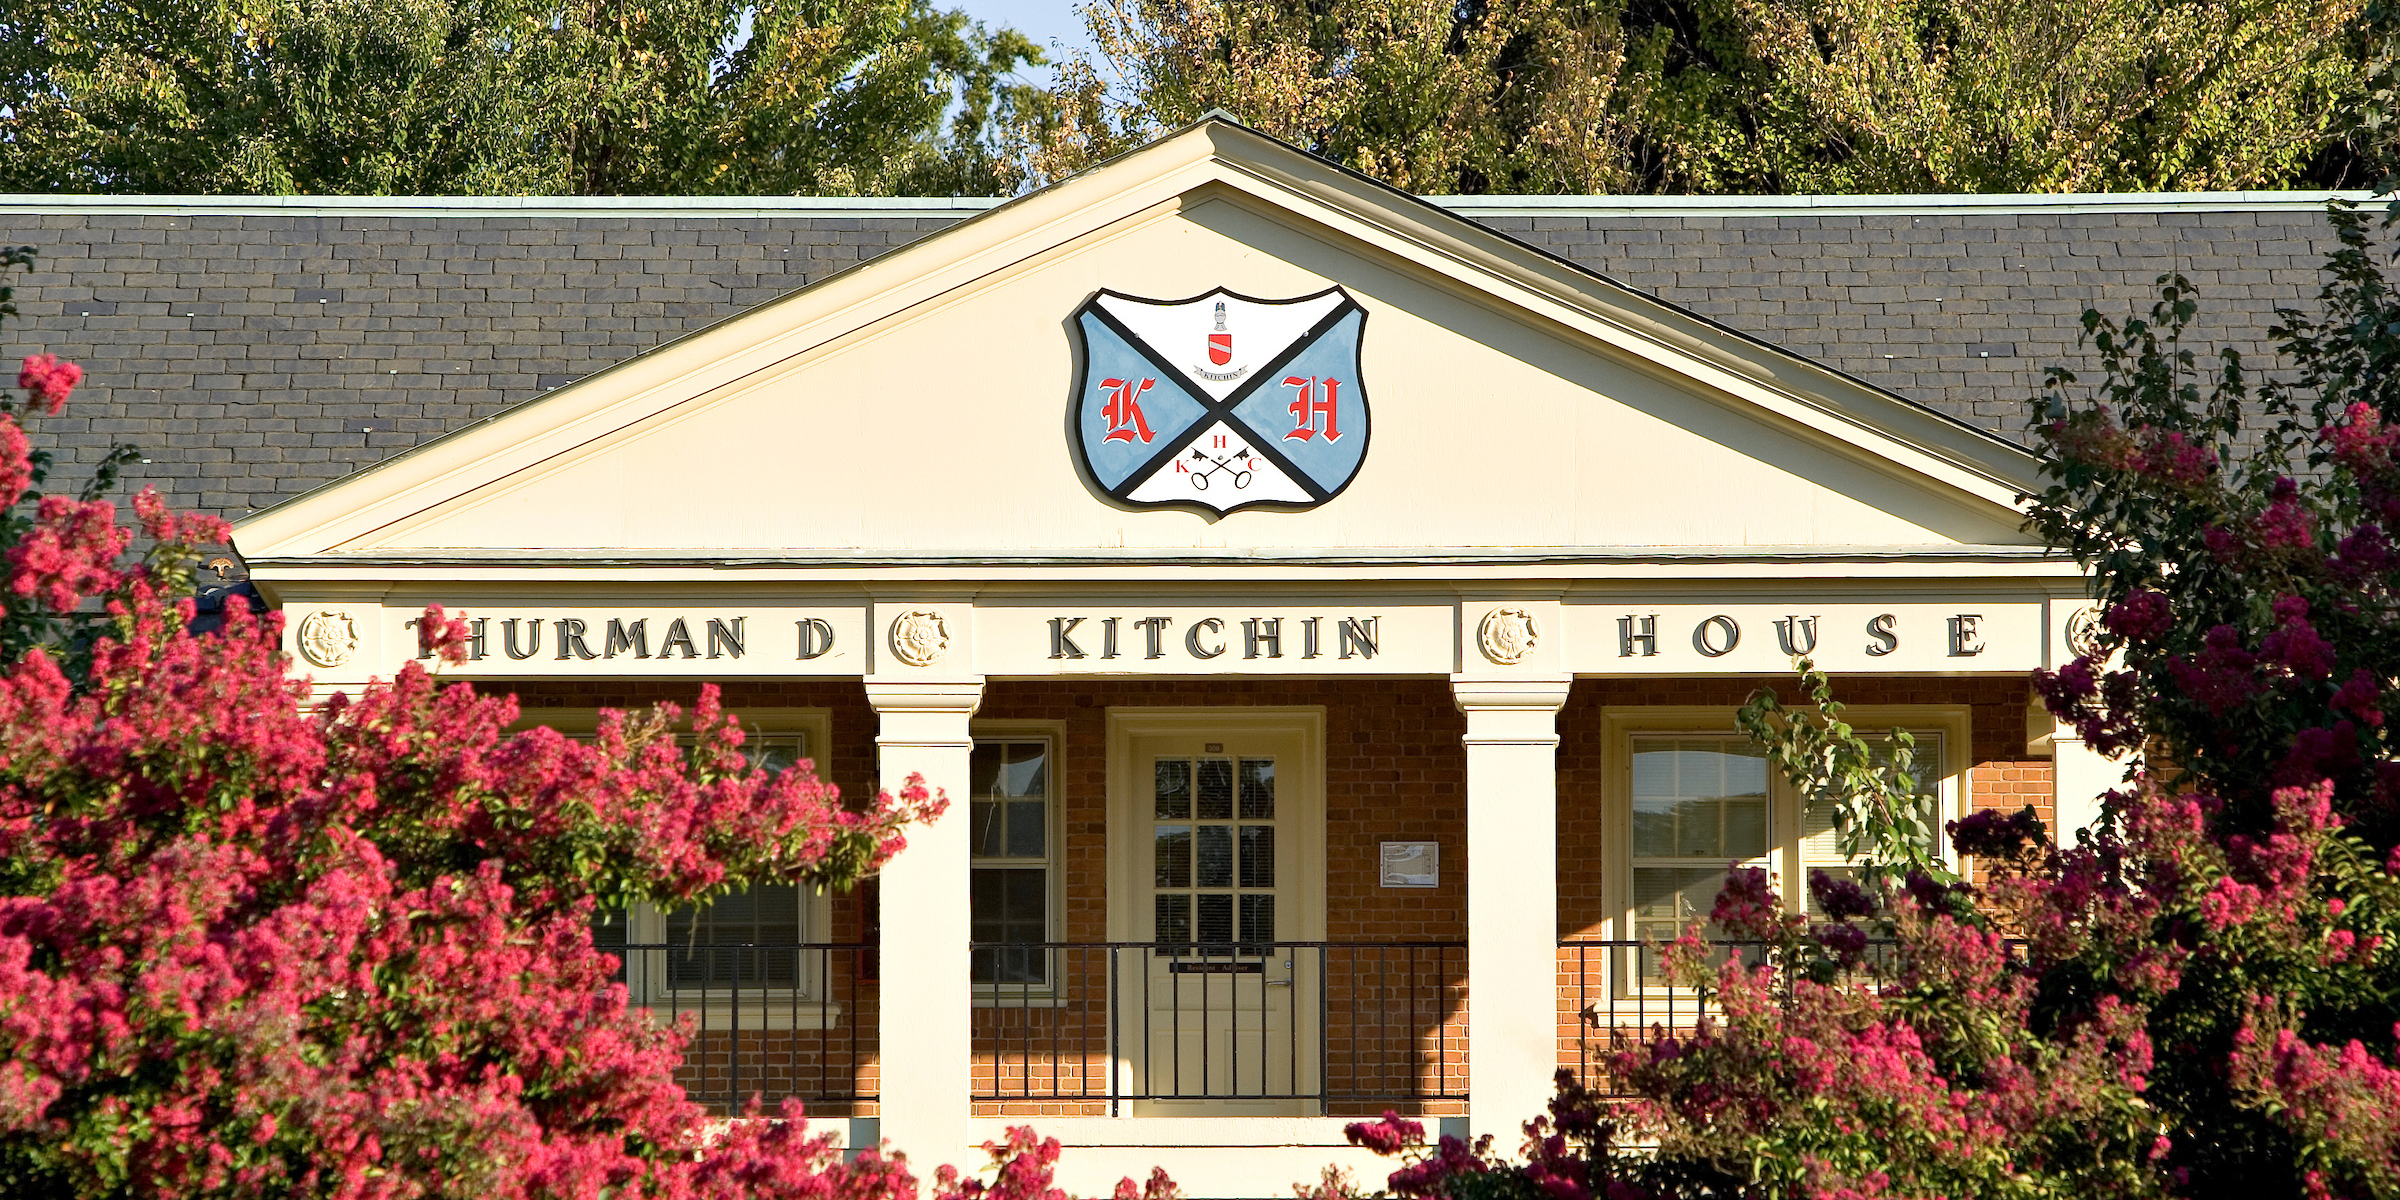 Kitchin residence hall's crest and sign